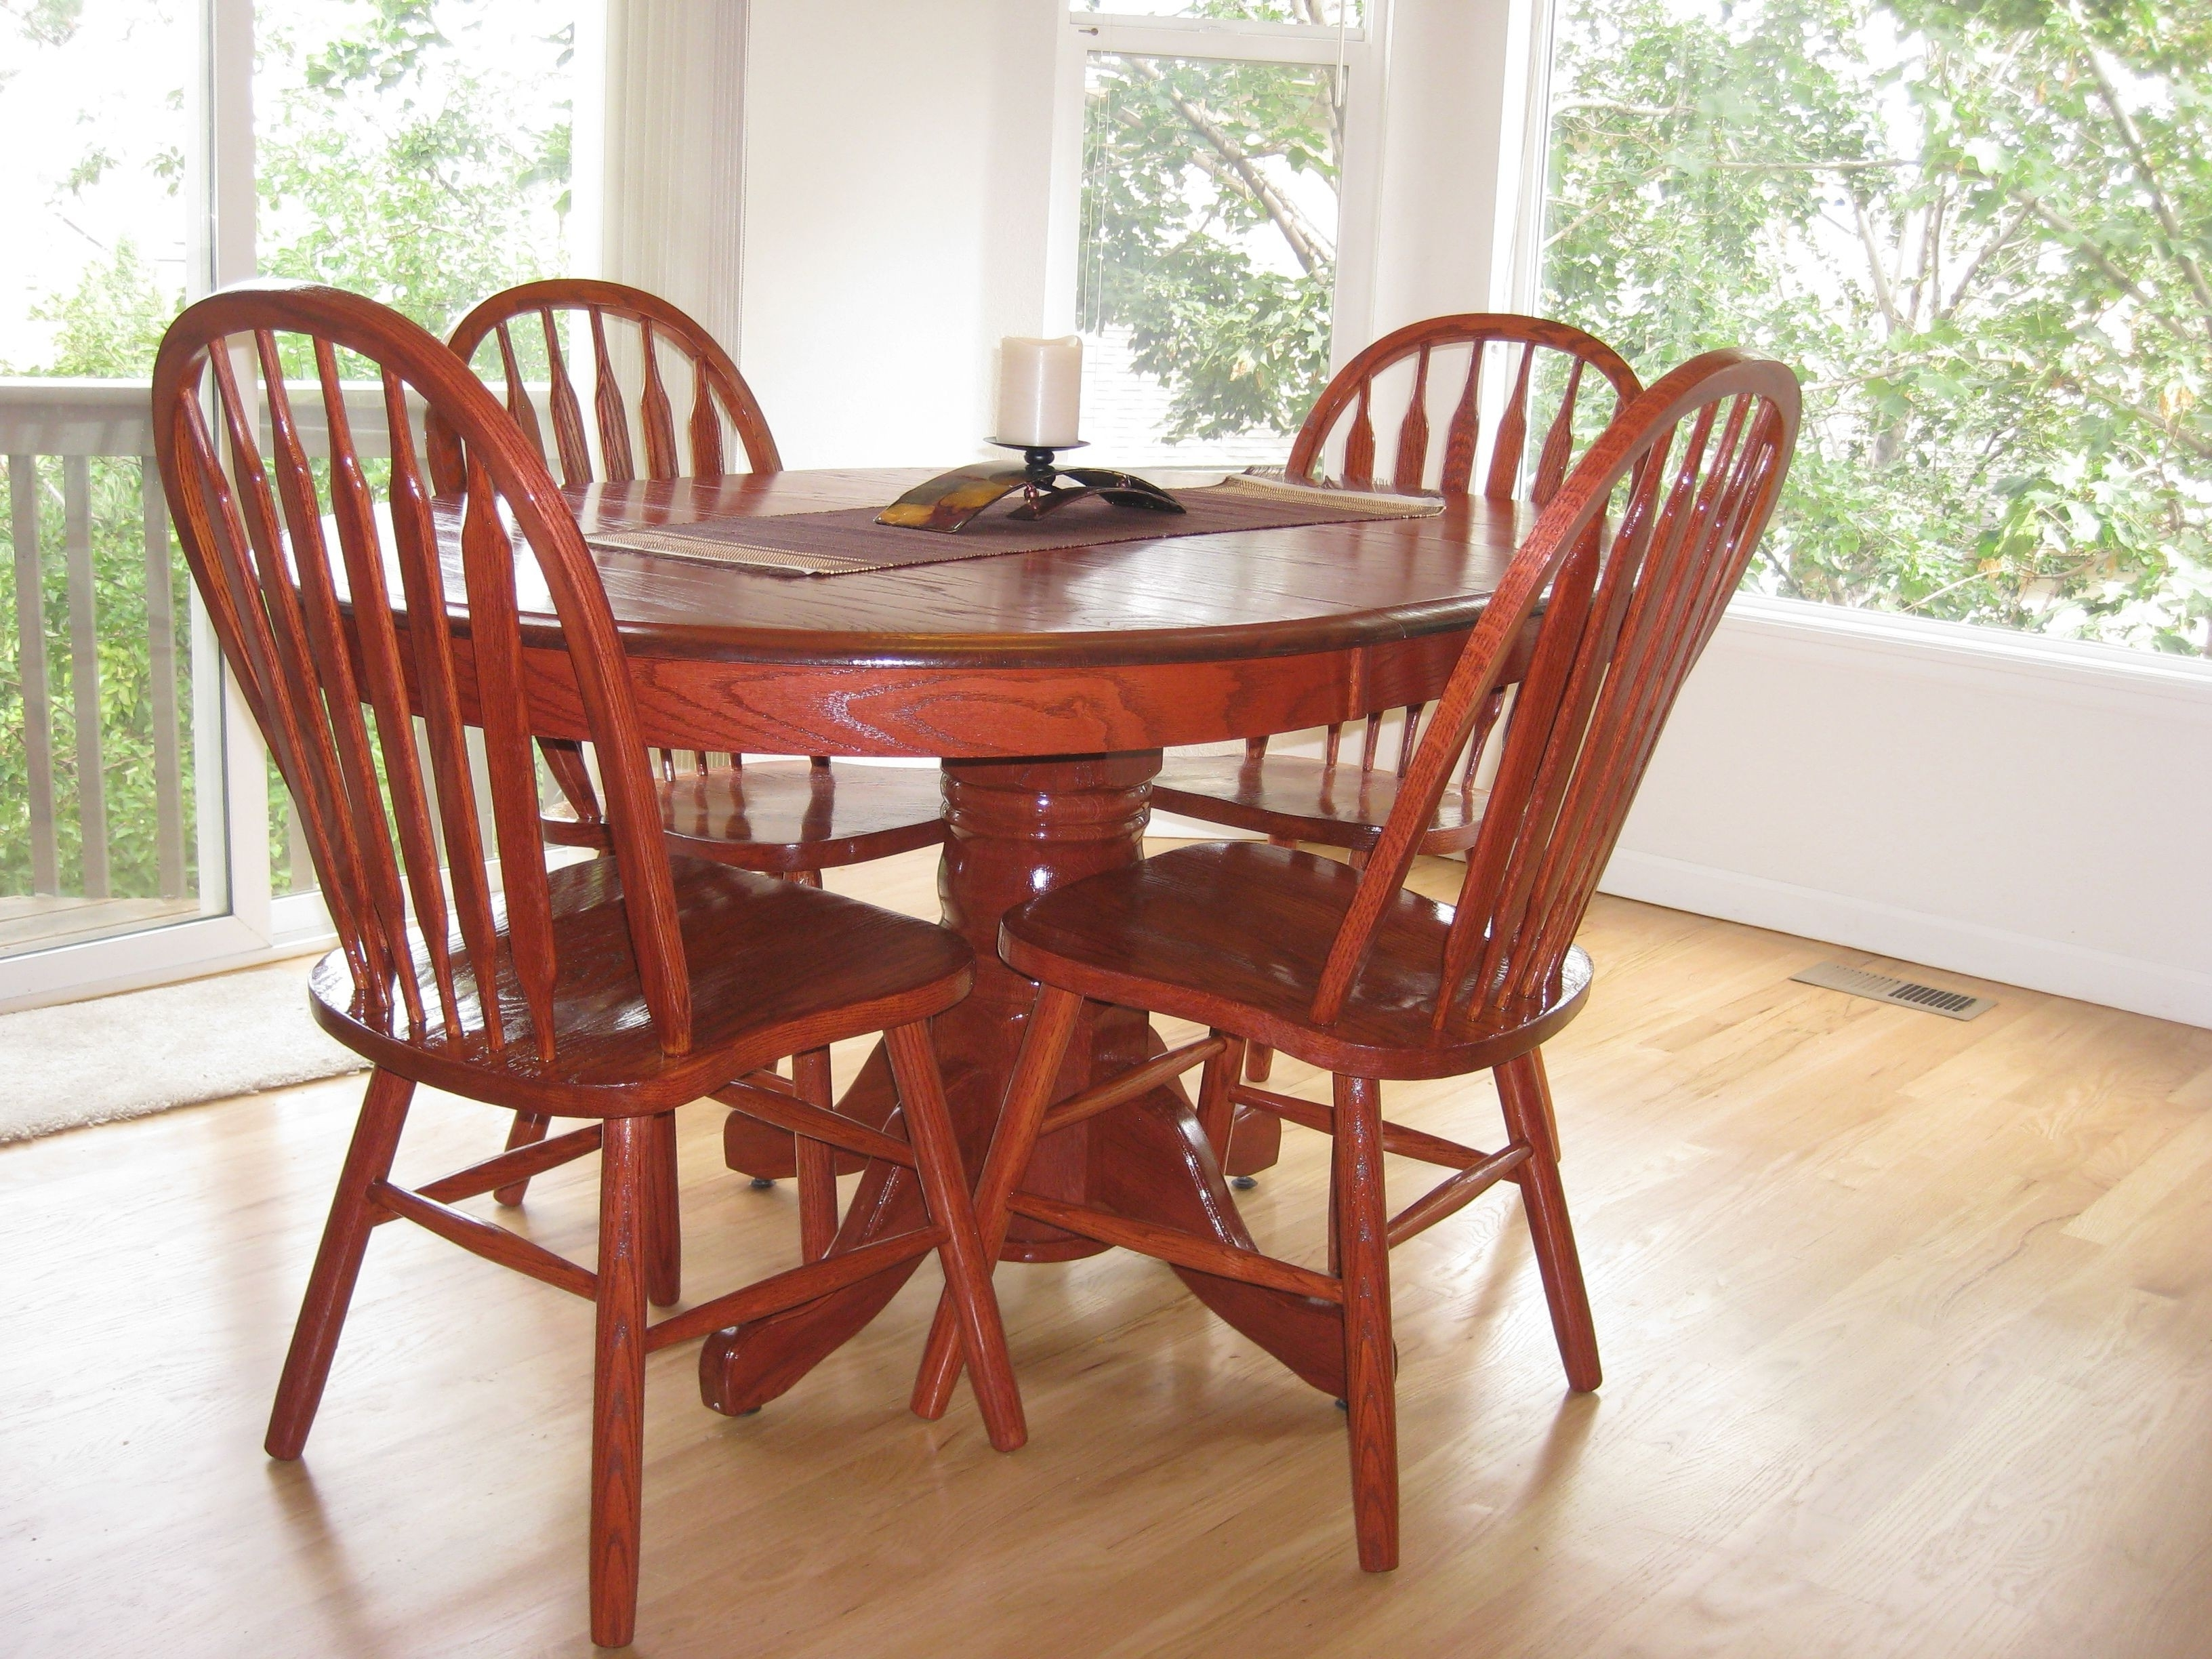 Most Popular Second Hand Oak Dining Chairs Regarding Used Dining Table And Chairs Sale Inspirational Used Dining Room (View 14 of 25)